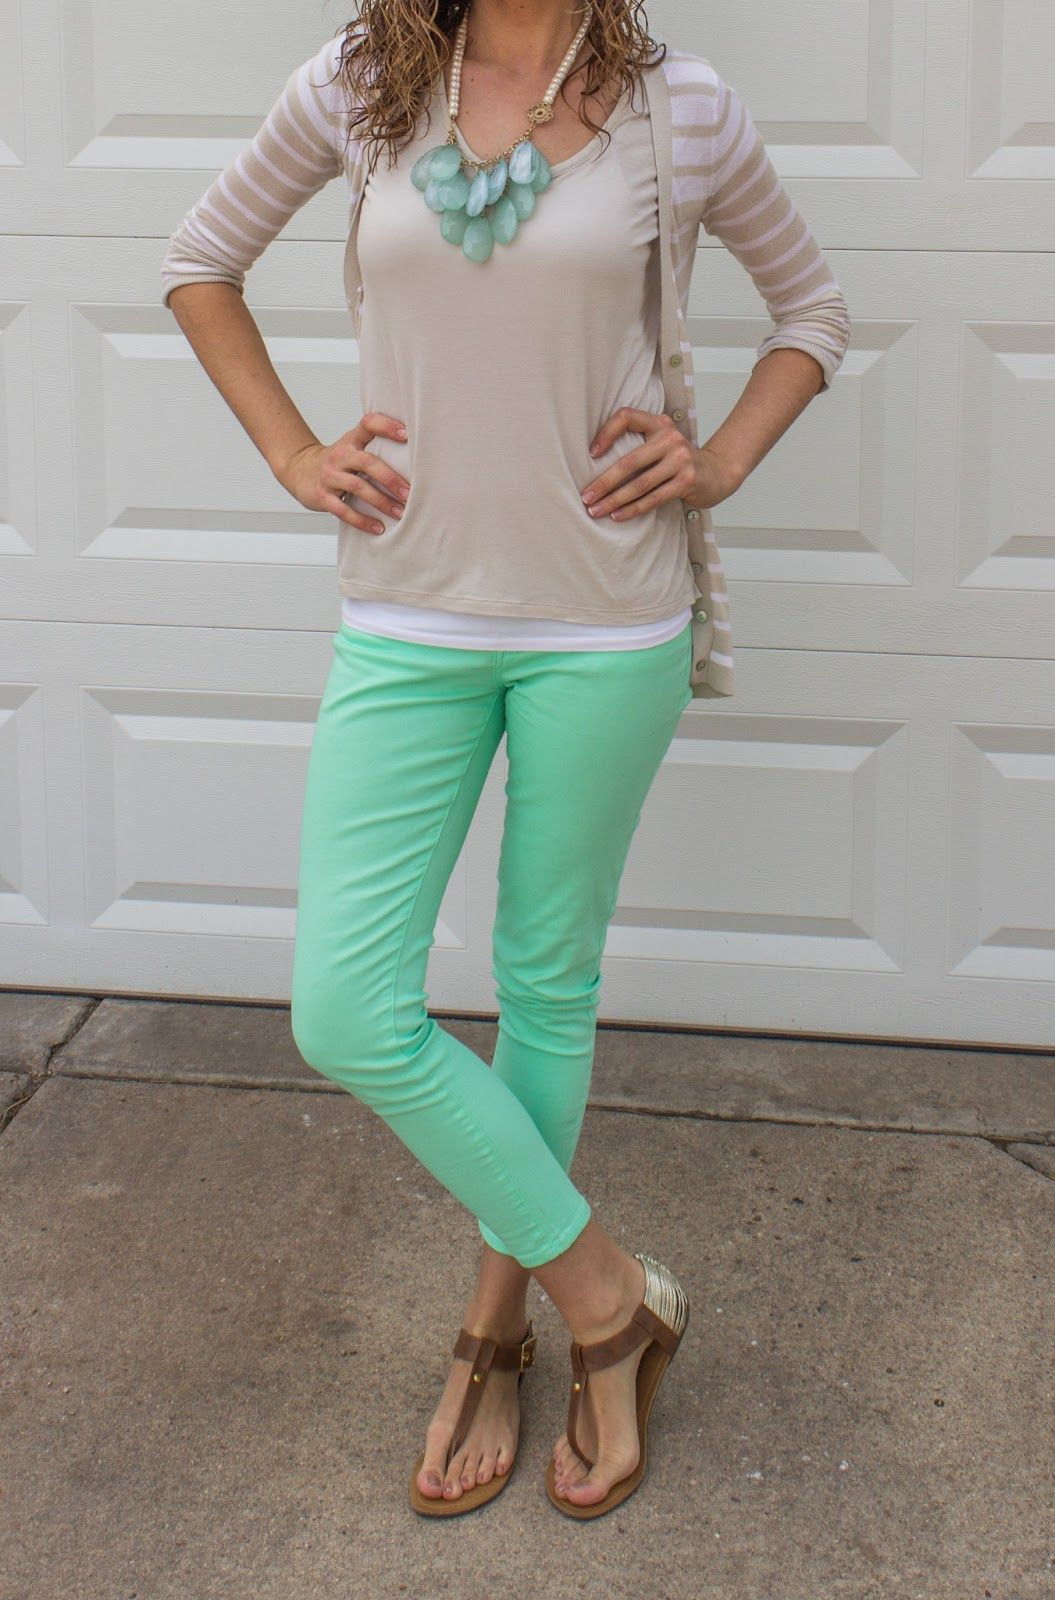 What To Wear With Light Green Pants